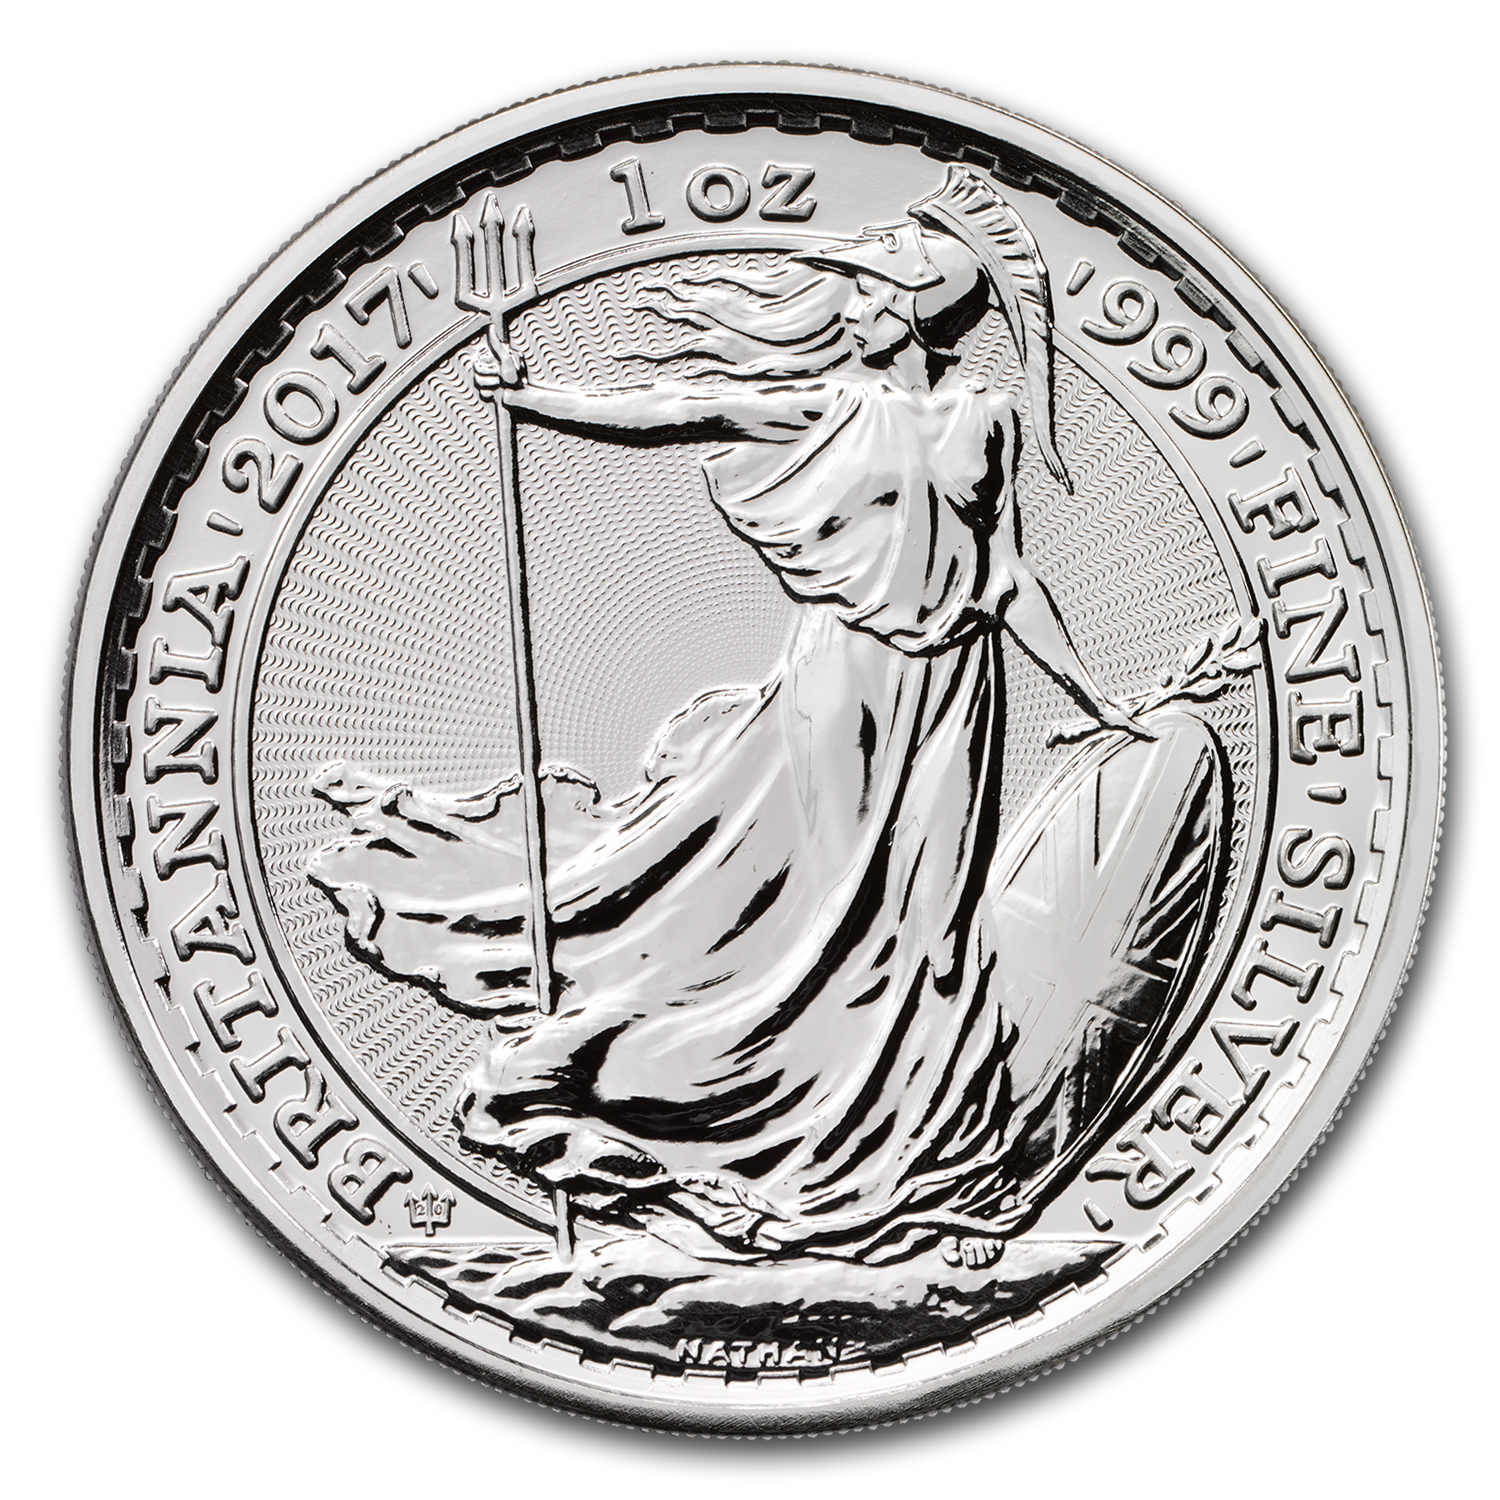 2017 Great Britain 1 oz Silver Britannia (20th Anniversary)